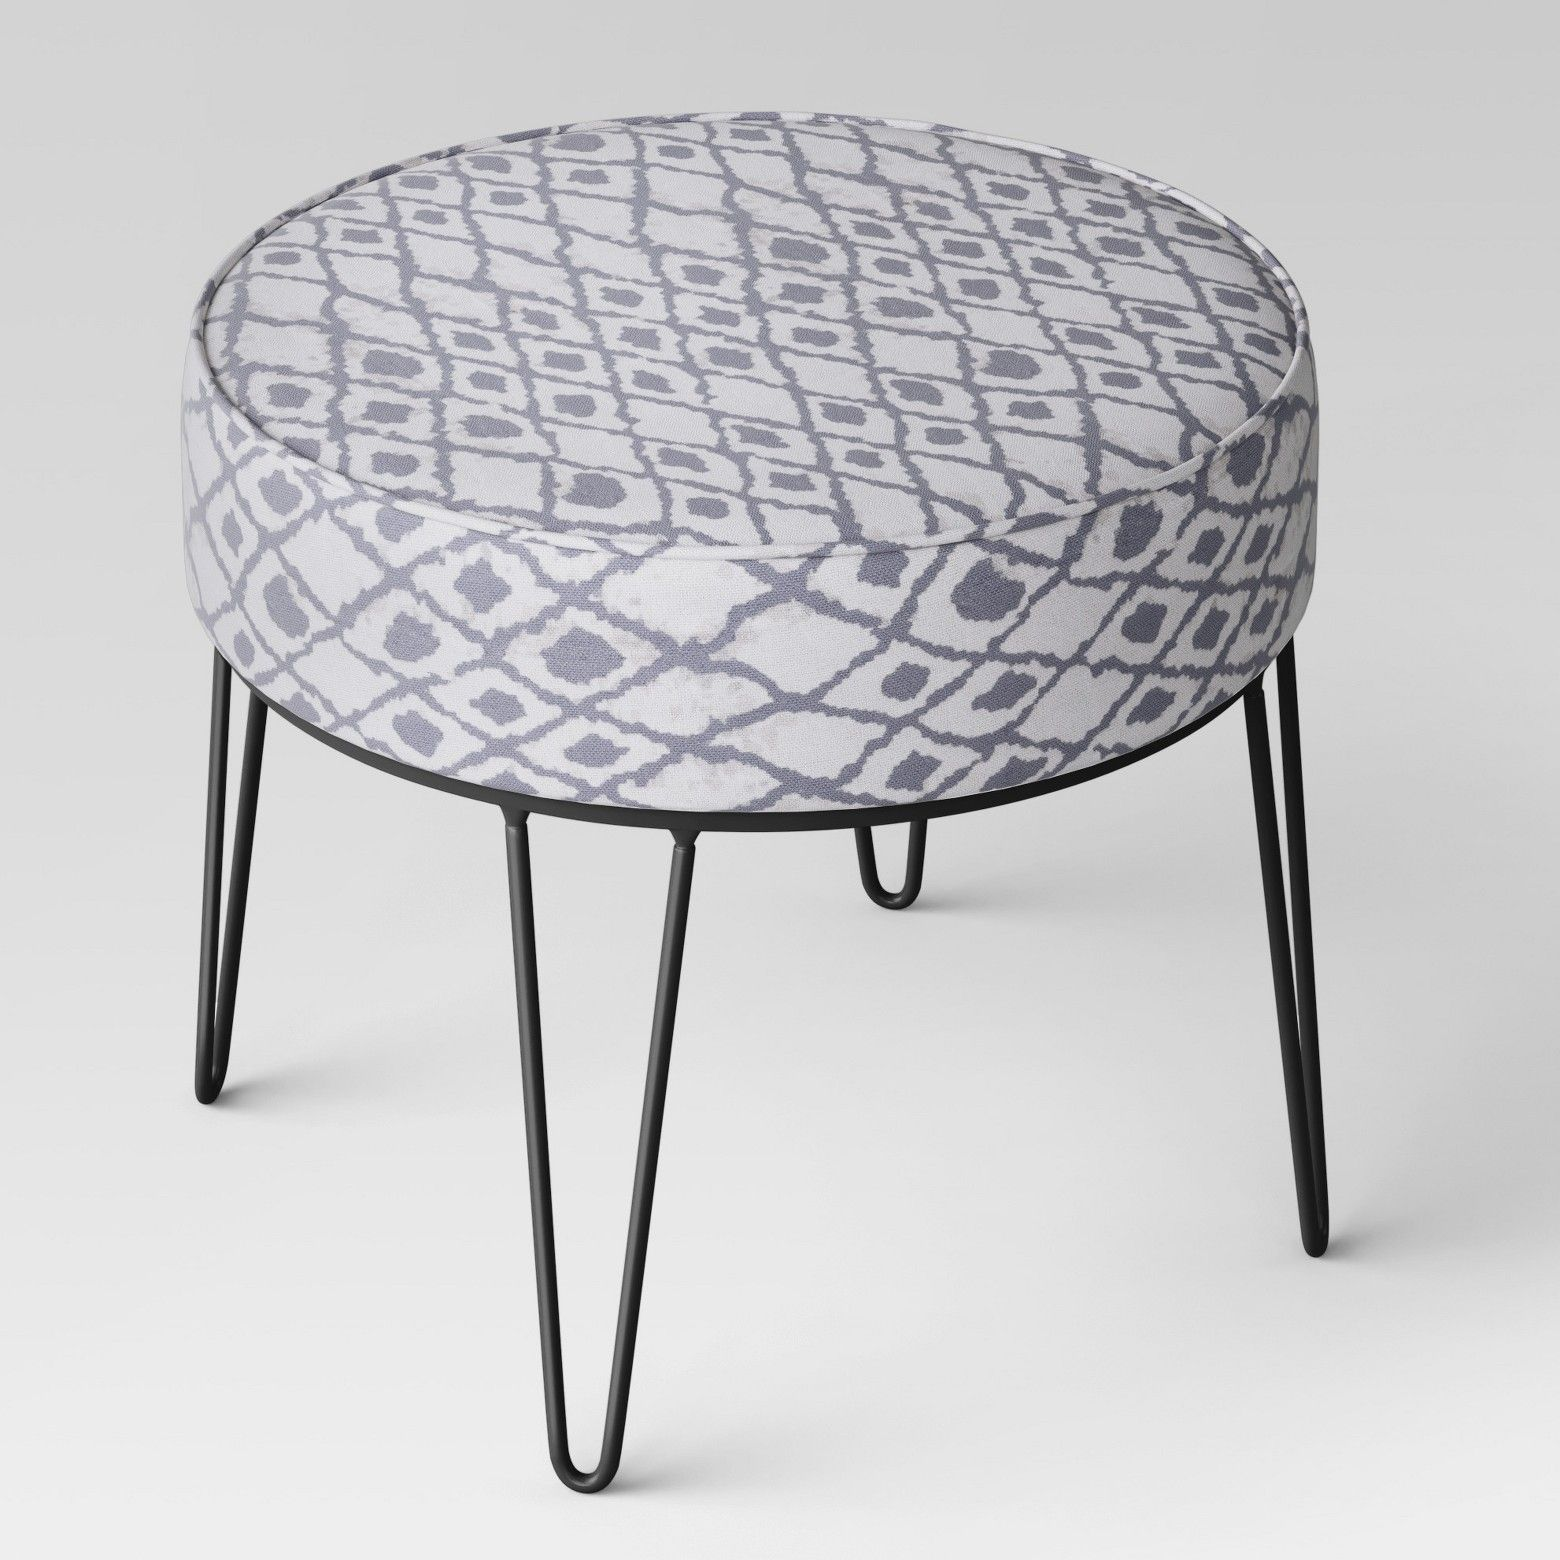 For A Comfortable Ottoman With A Decorative Twist Add The Carman